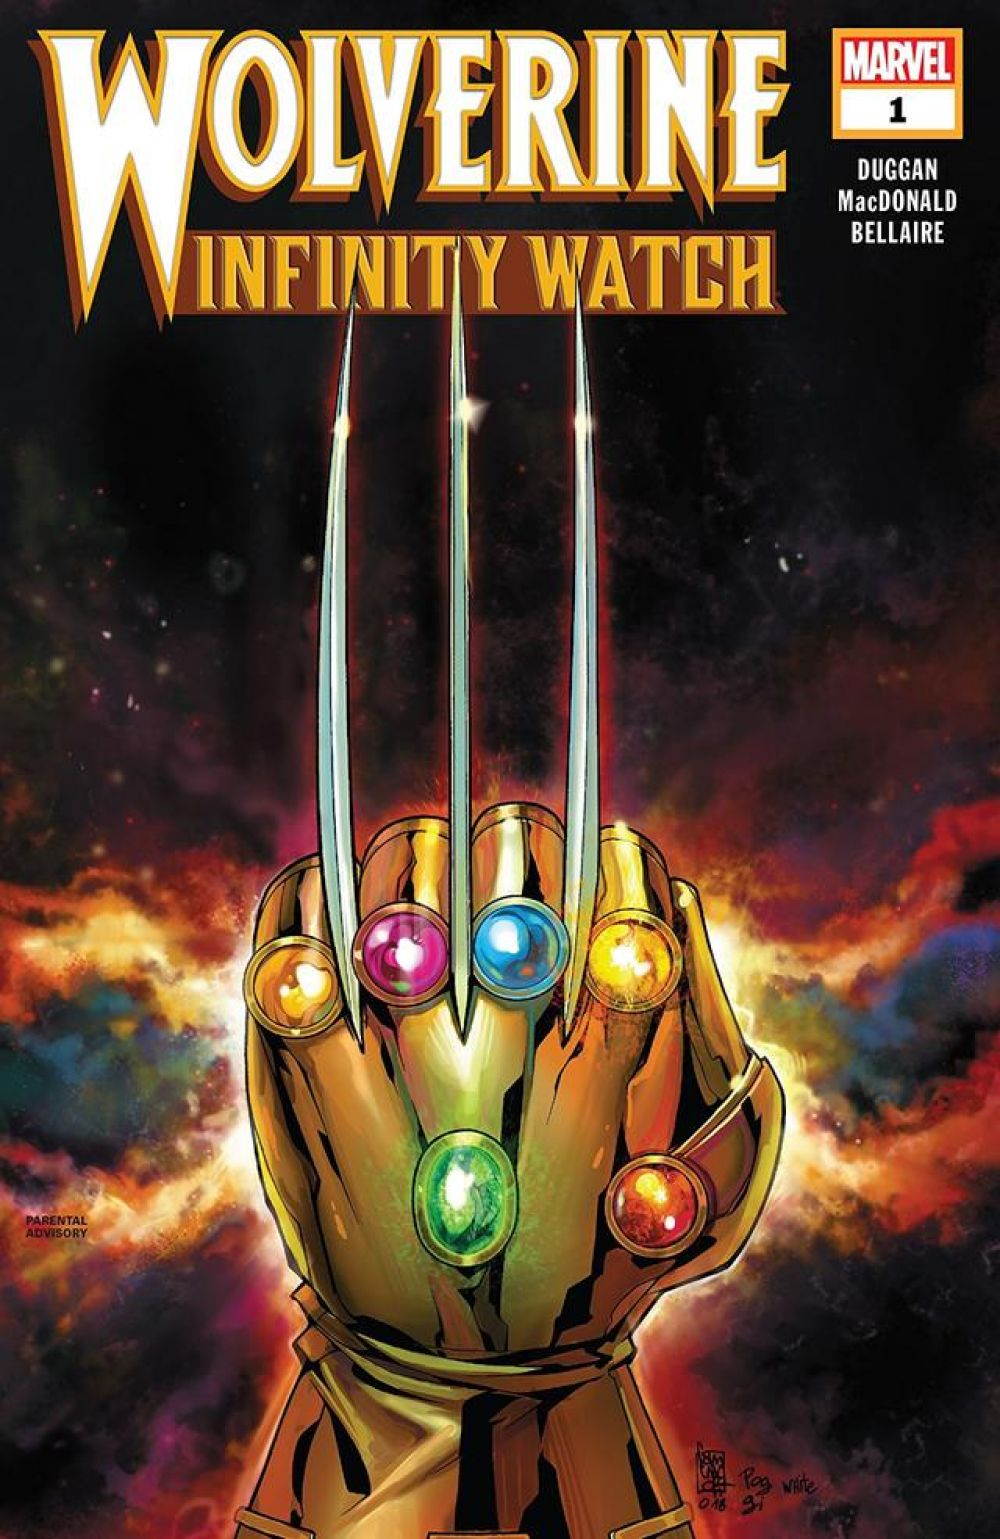 Wolverine: The Infinity Watch #1